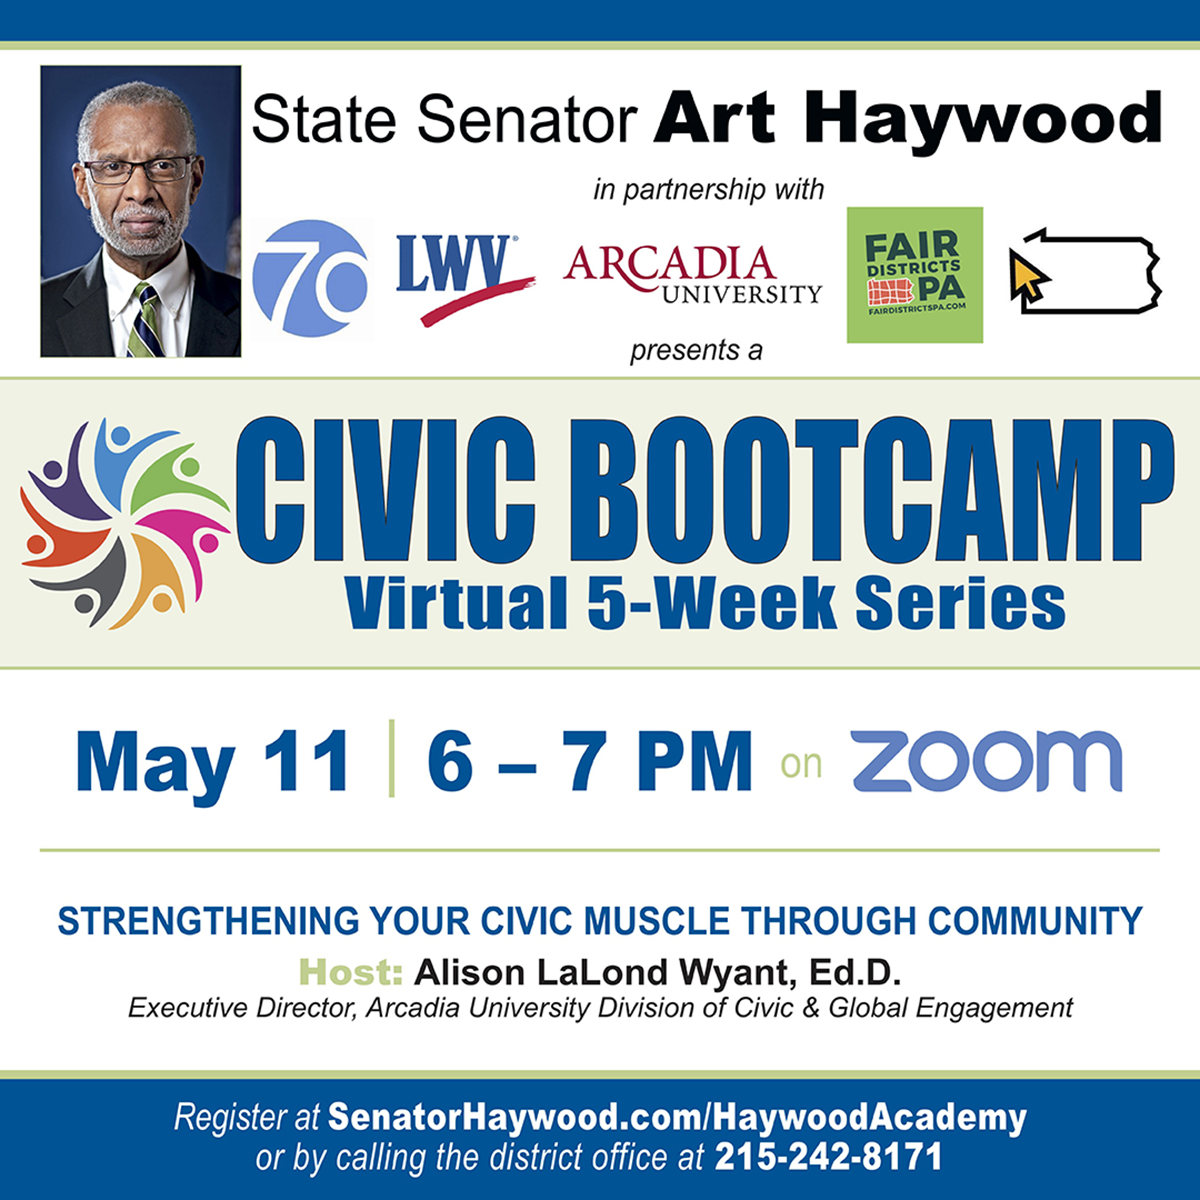 Civic Bootcamp - Strengthening Your Civic Muscle Through Community